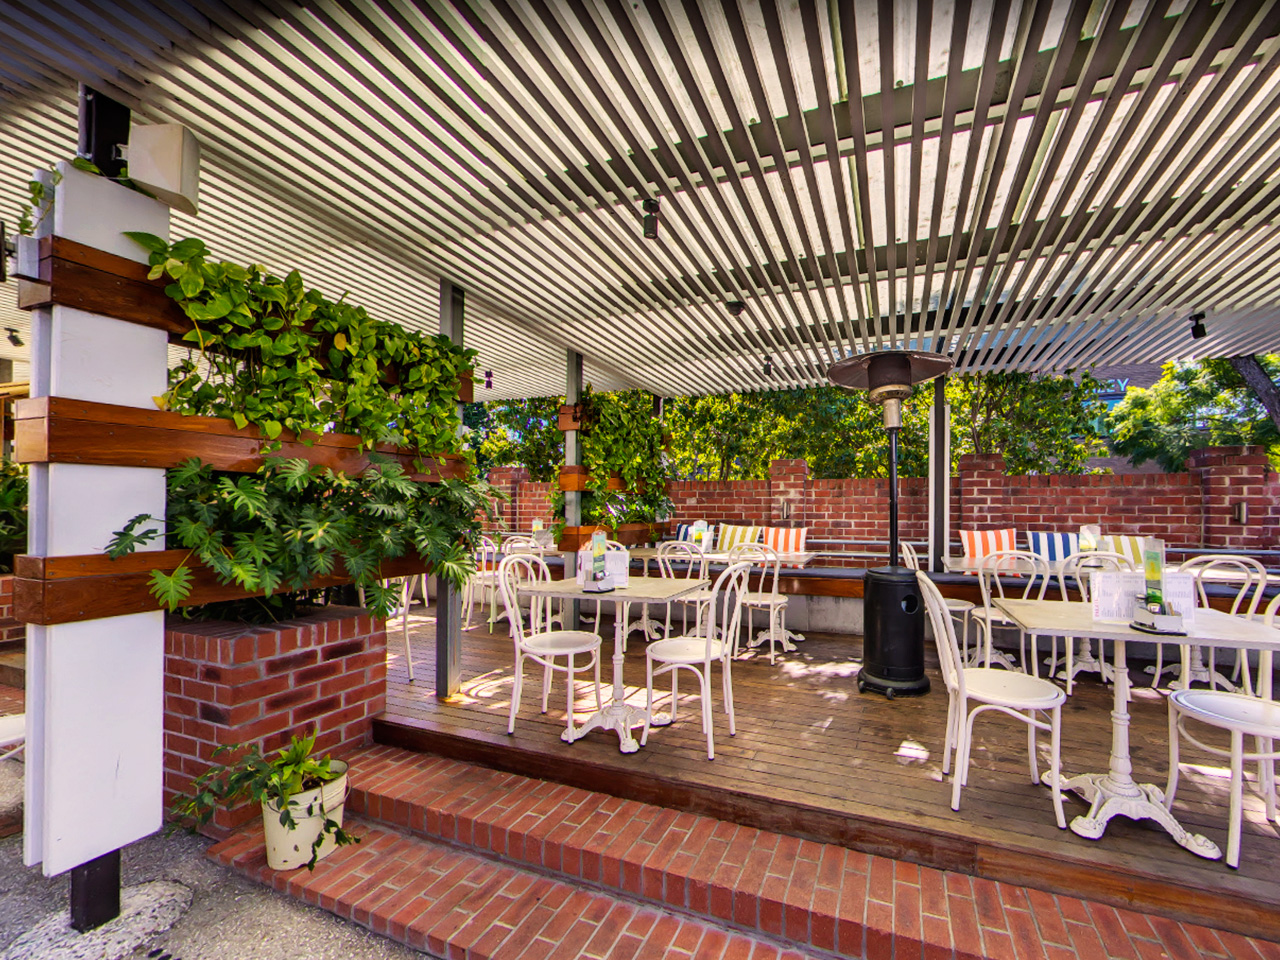 Tables And Chairs In The Garden Function Space With Ceiling